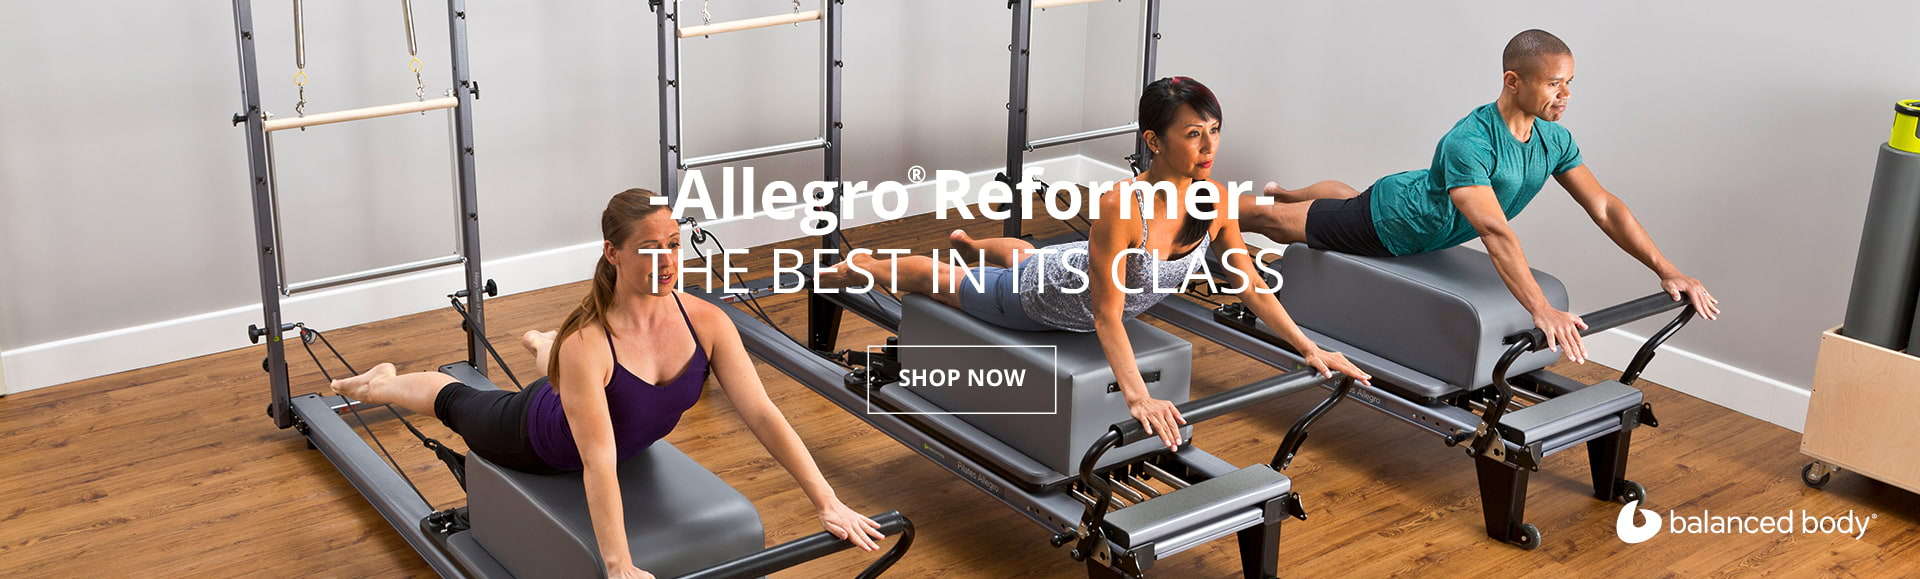 Allegro Reformer - The best in it's class